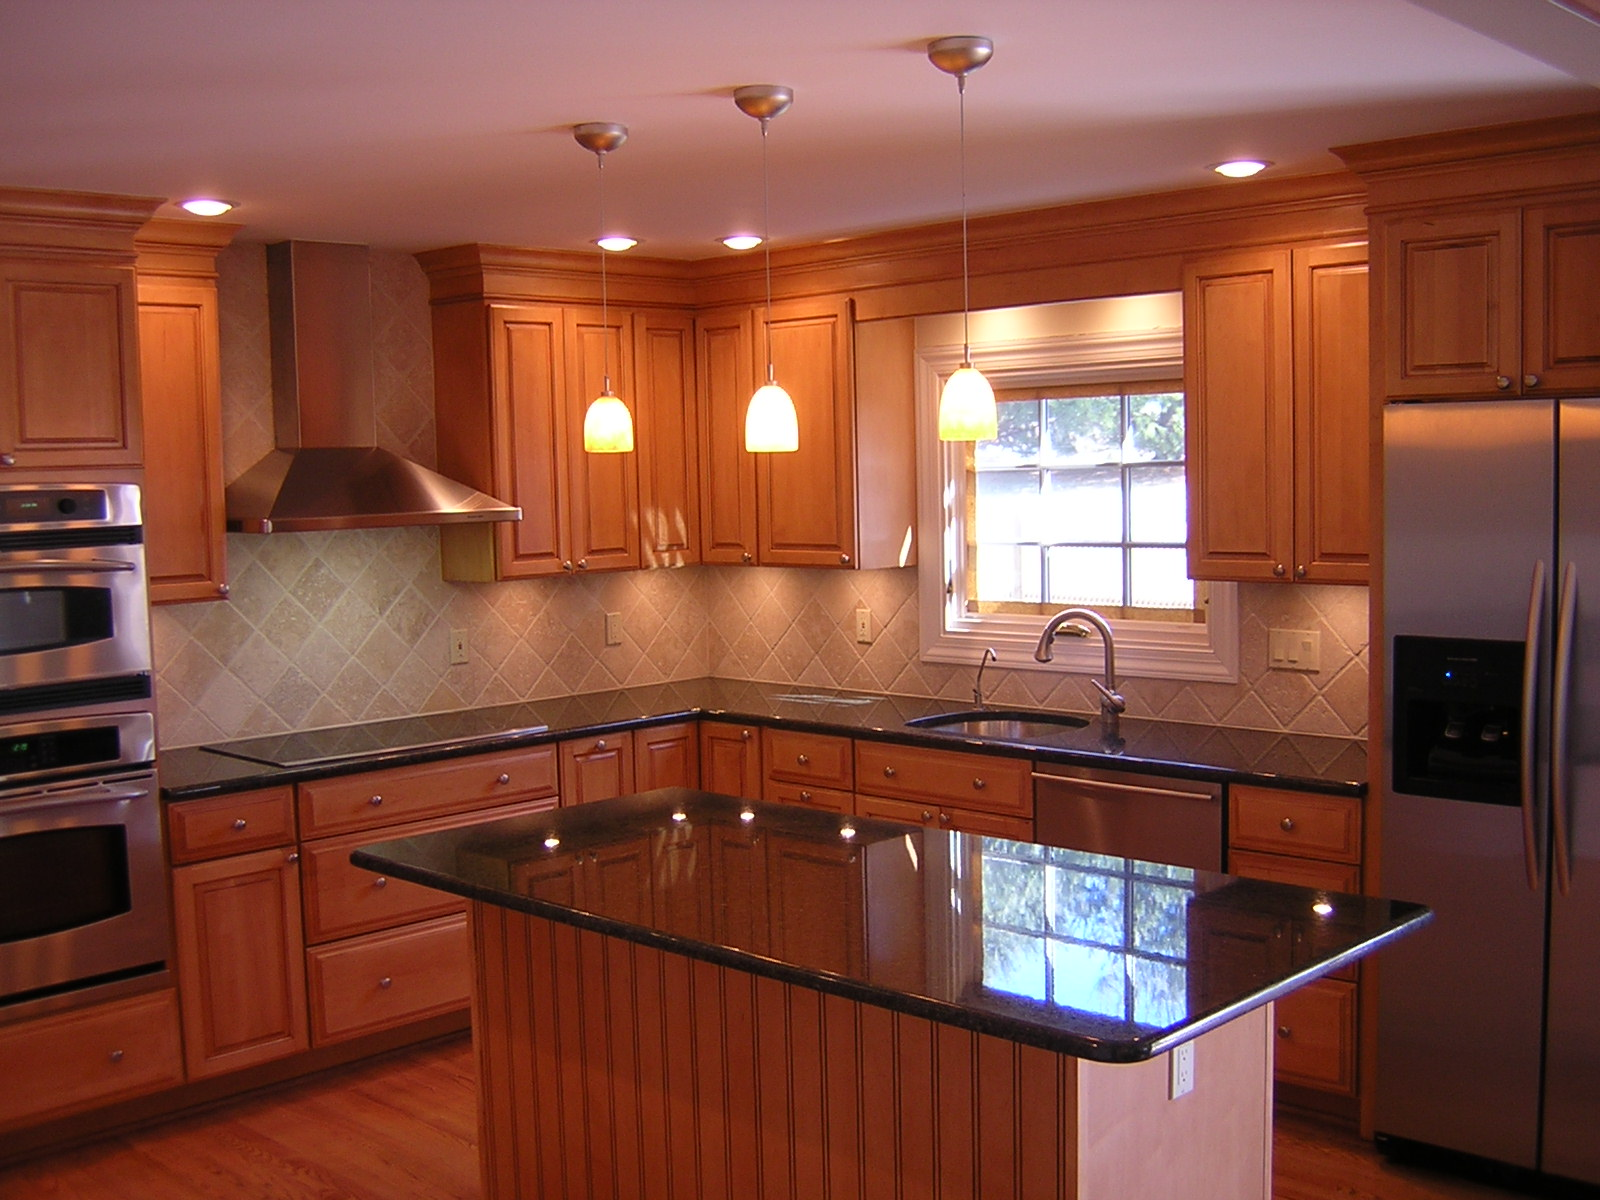 Granite kitchen counter designs   Hawk Haven granite kitchen counter designs photo   6